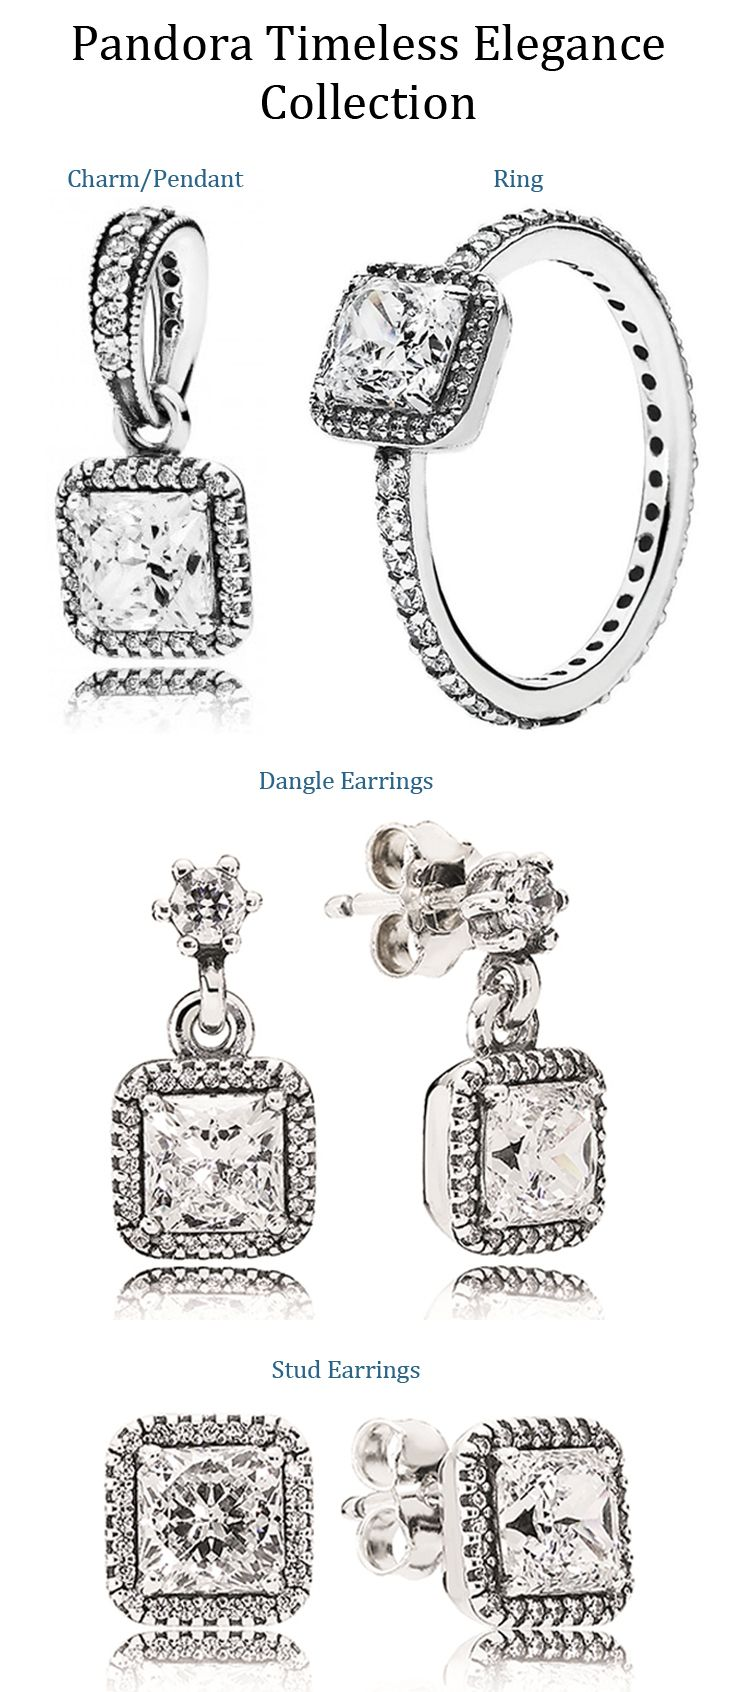 Pandora Timeless Elegance Collection available at Exclusively Diamonds